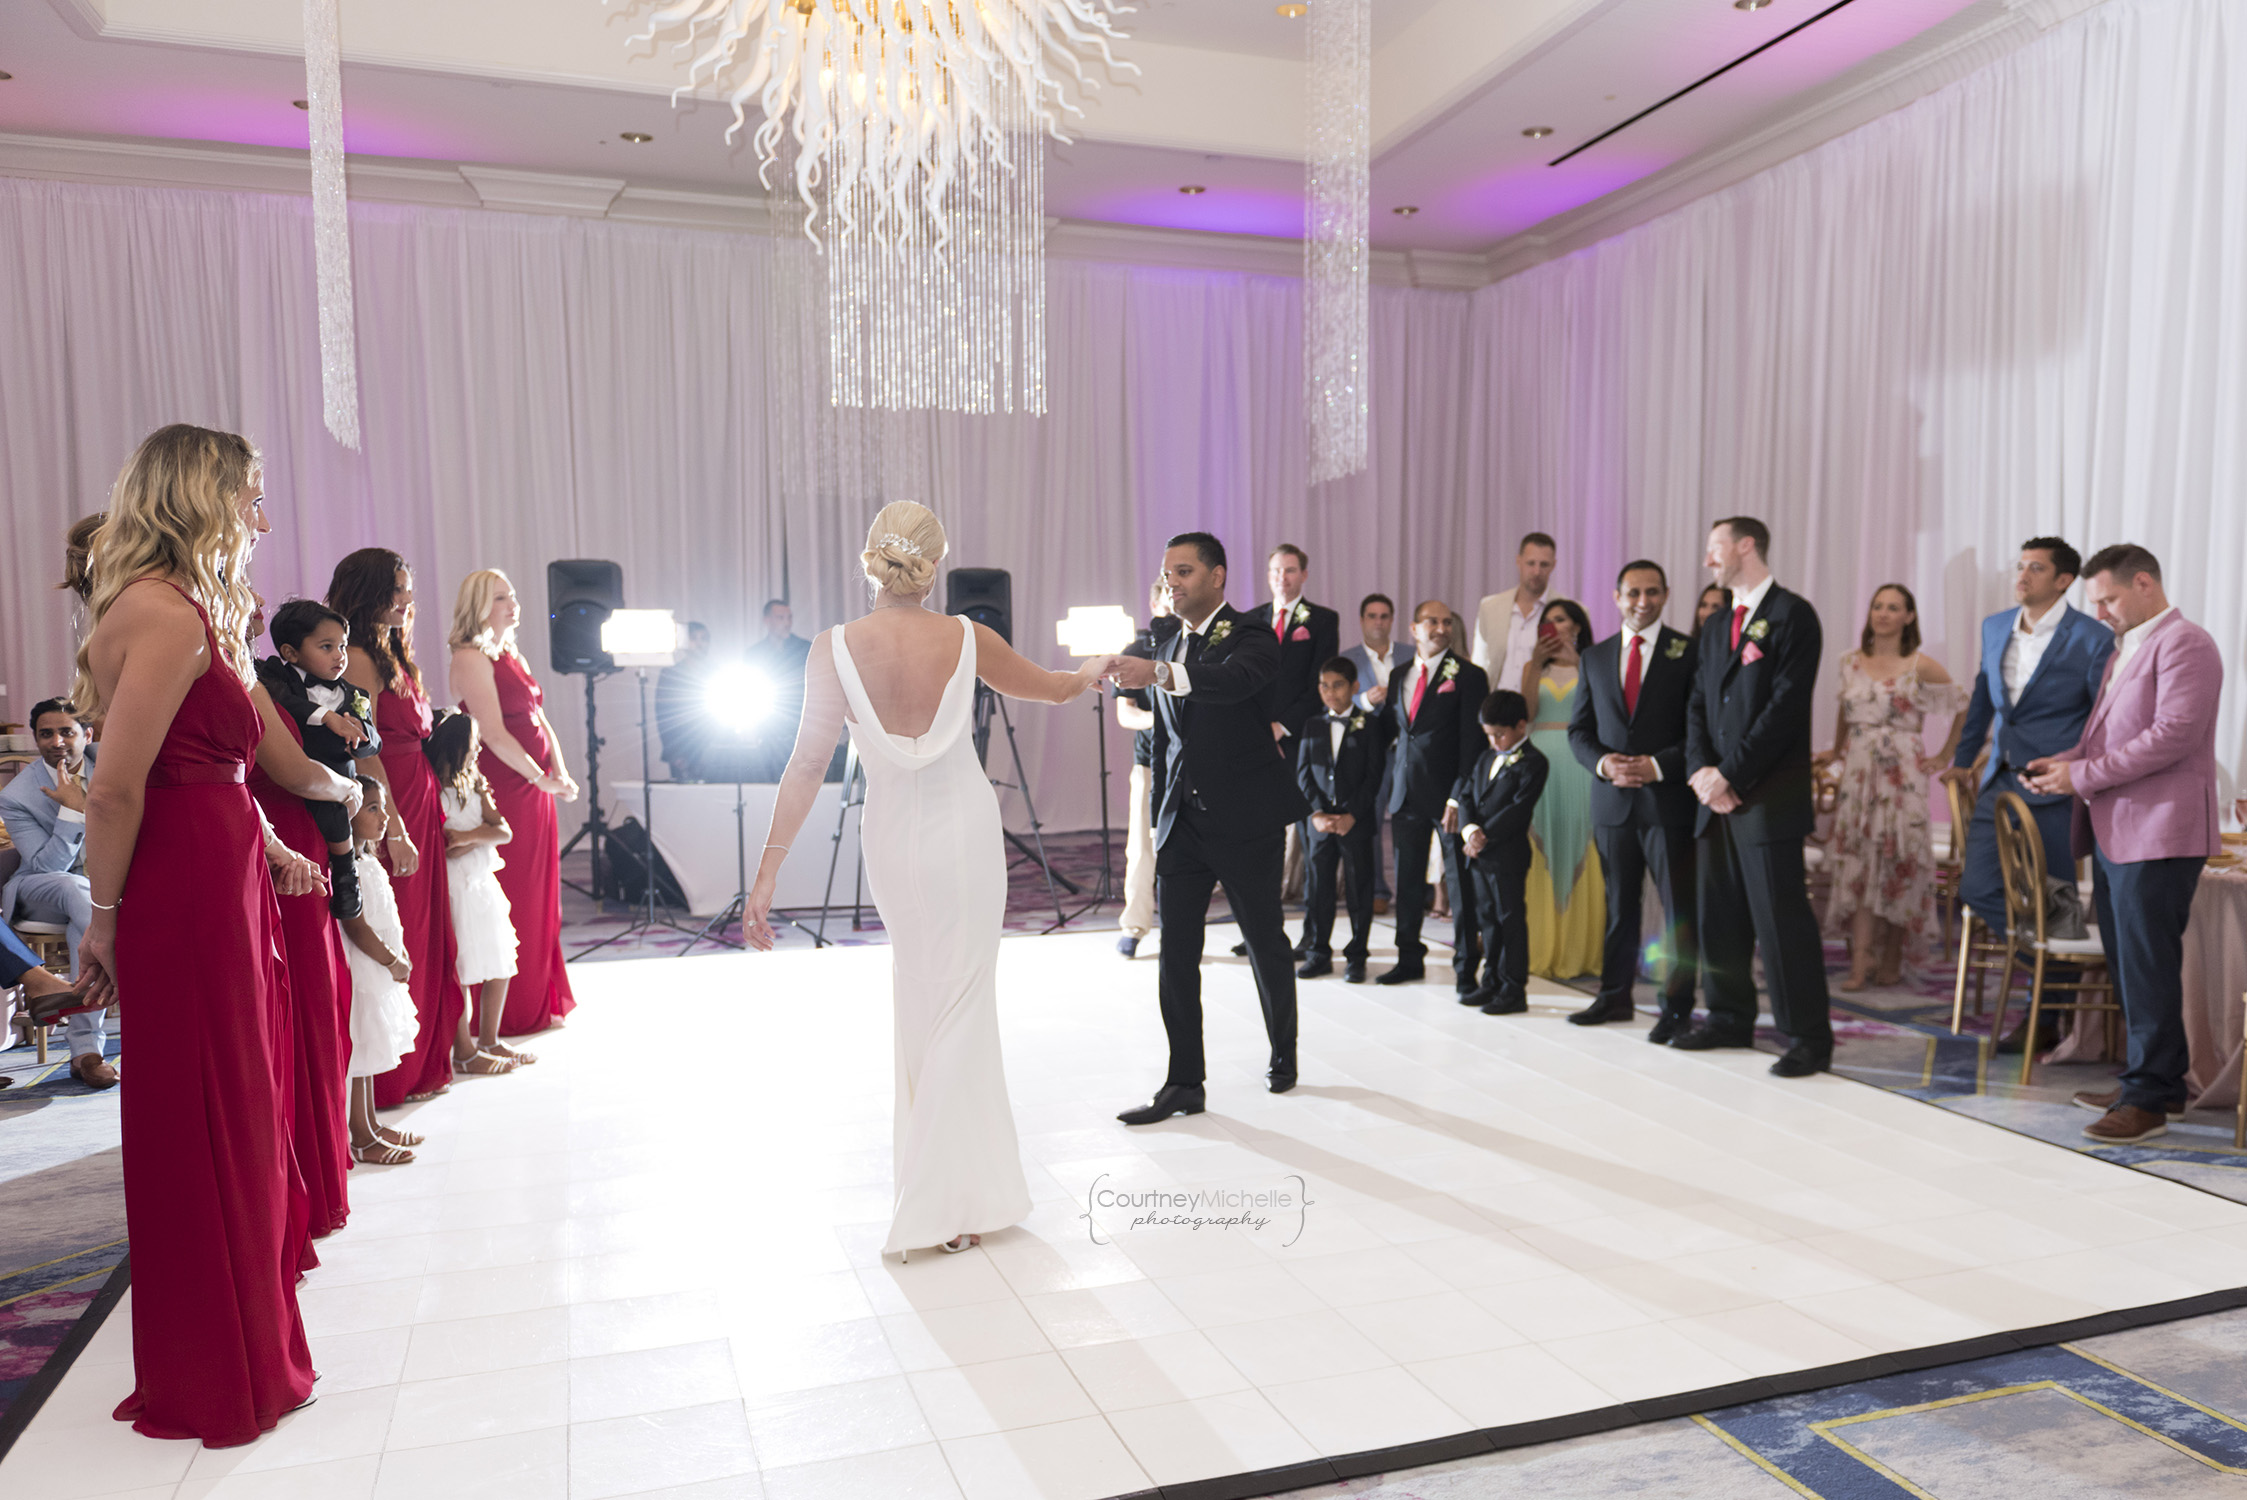 bride-and-groom-first-dance-grand-cayman-beach-wedding-photography-by-courtney-laper©CopyrightCMP-LeaAnneRaj-8120.jpg